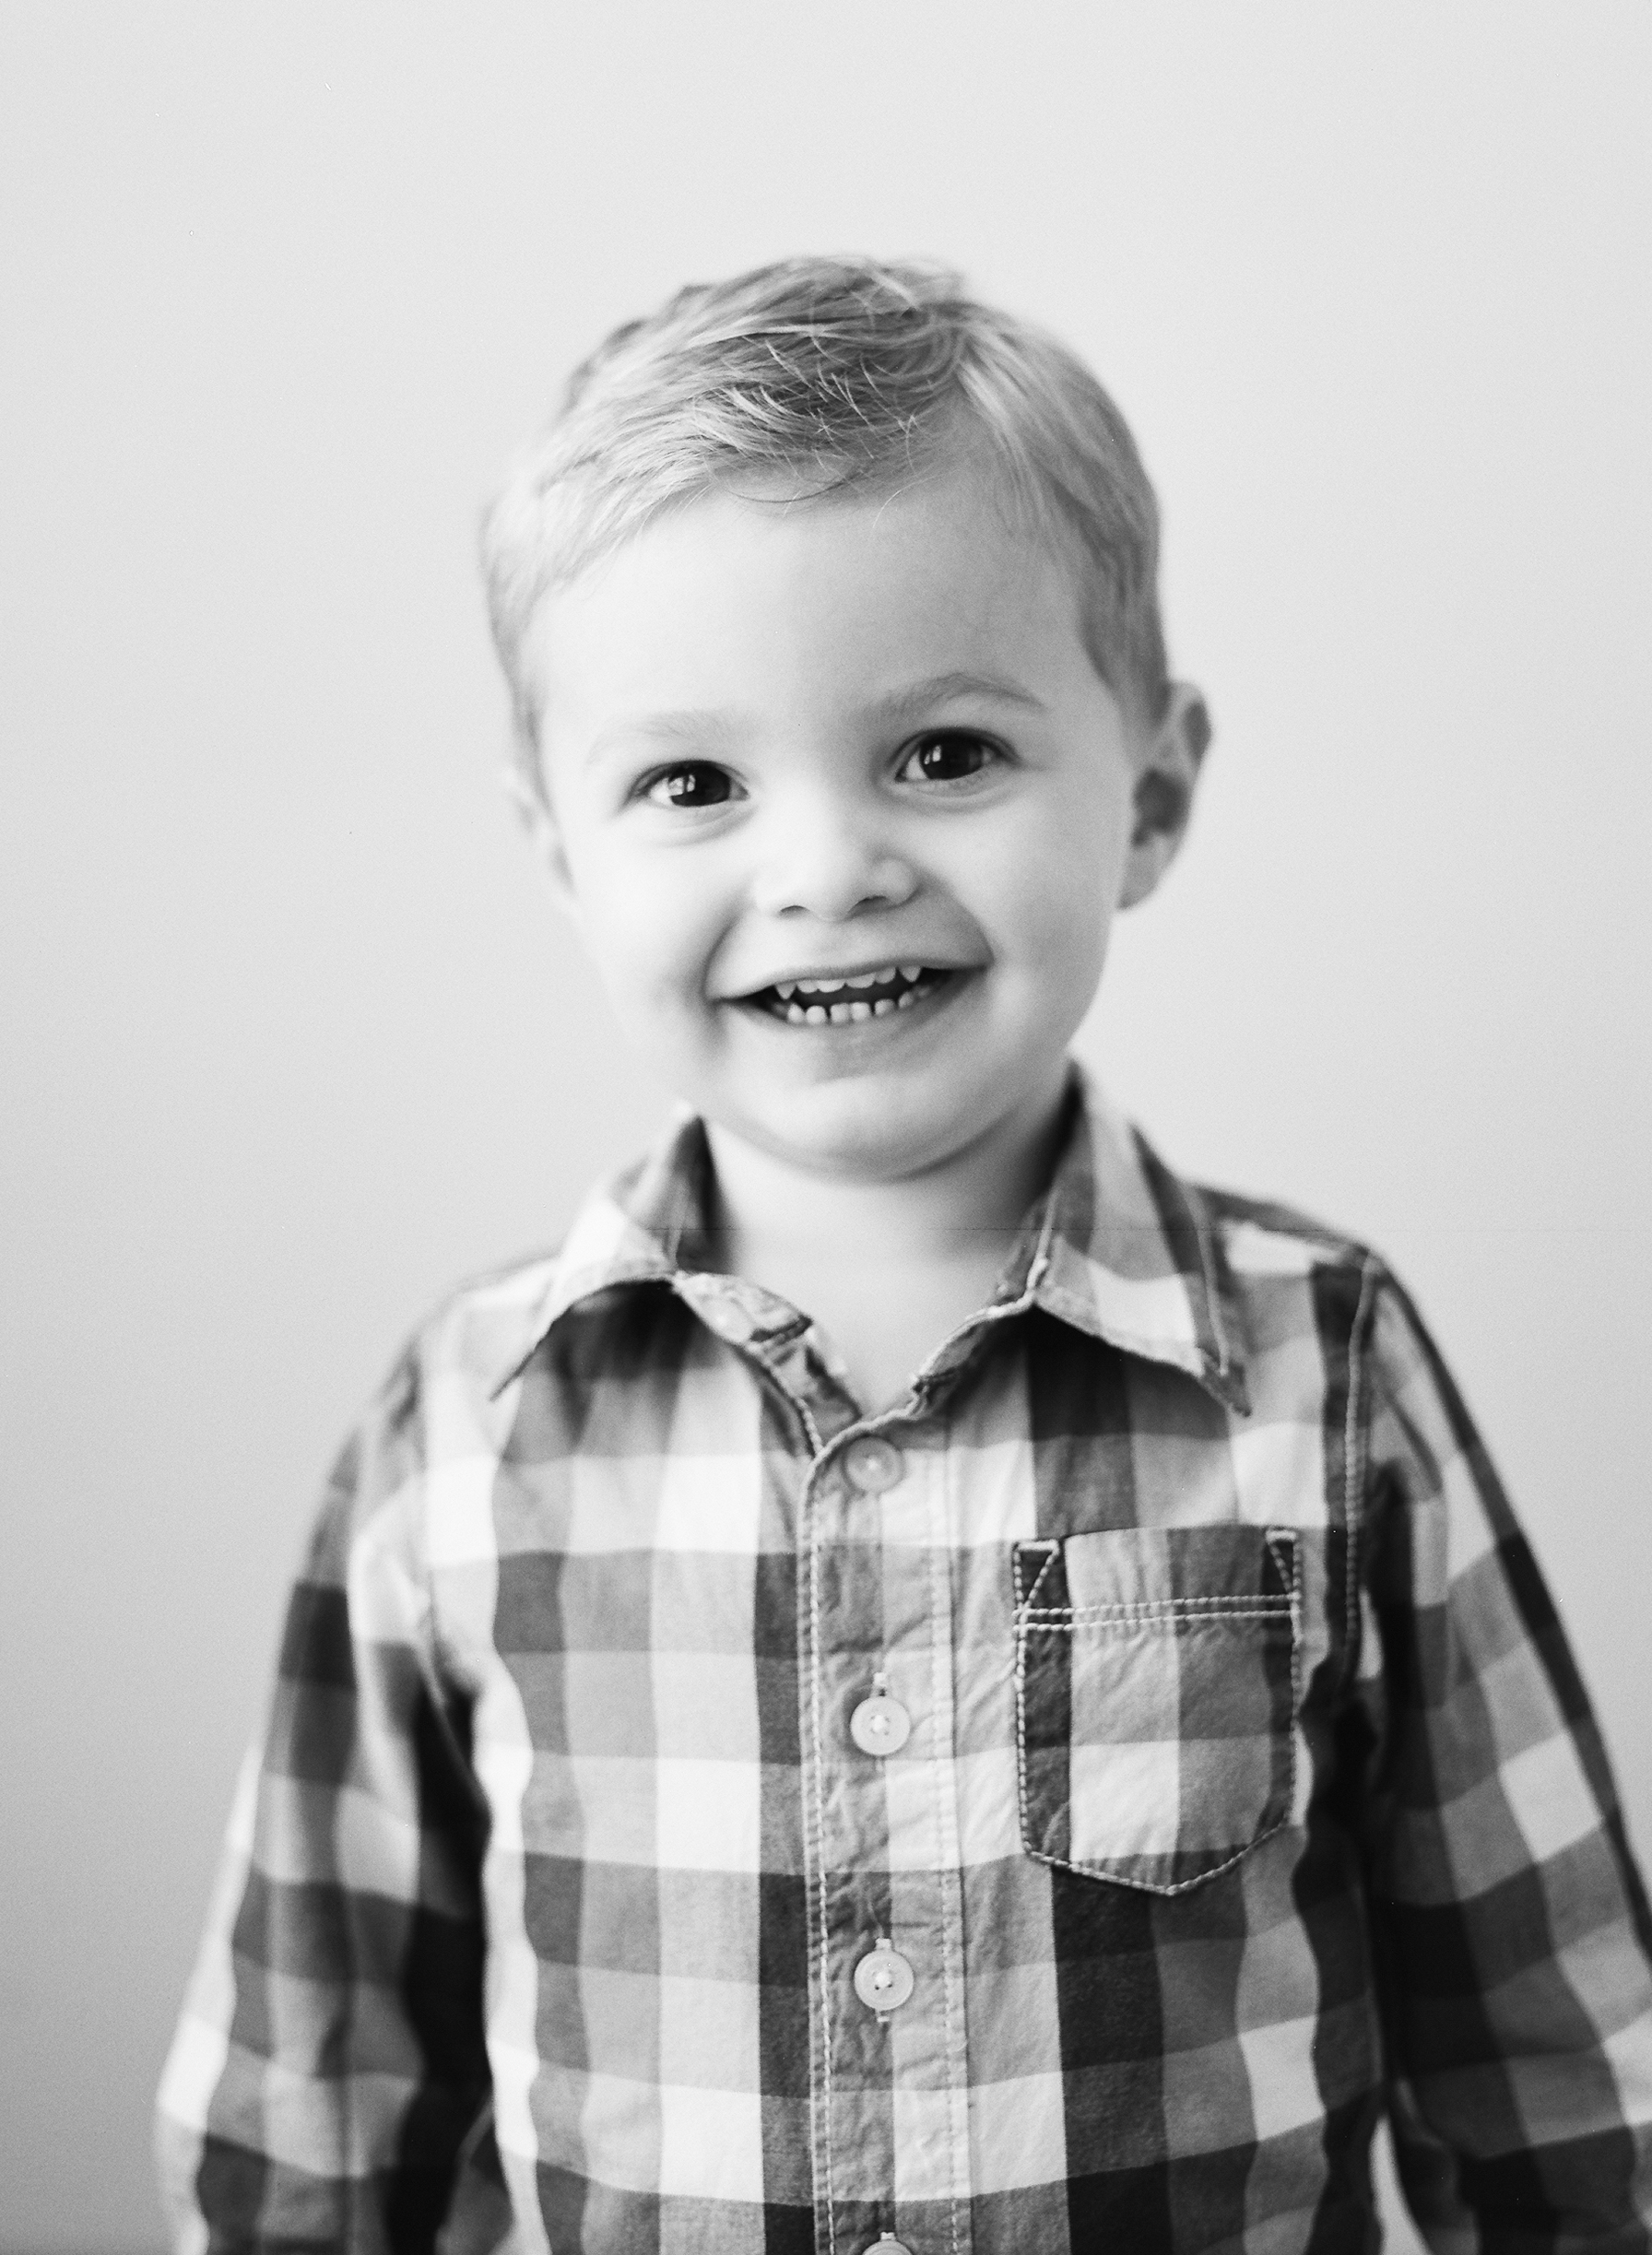 nashville-franklin-blackandwhite-childrens-portraiture-18.JPG